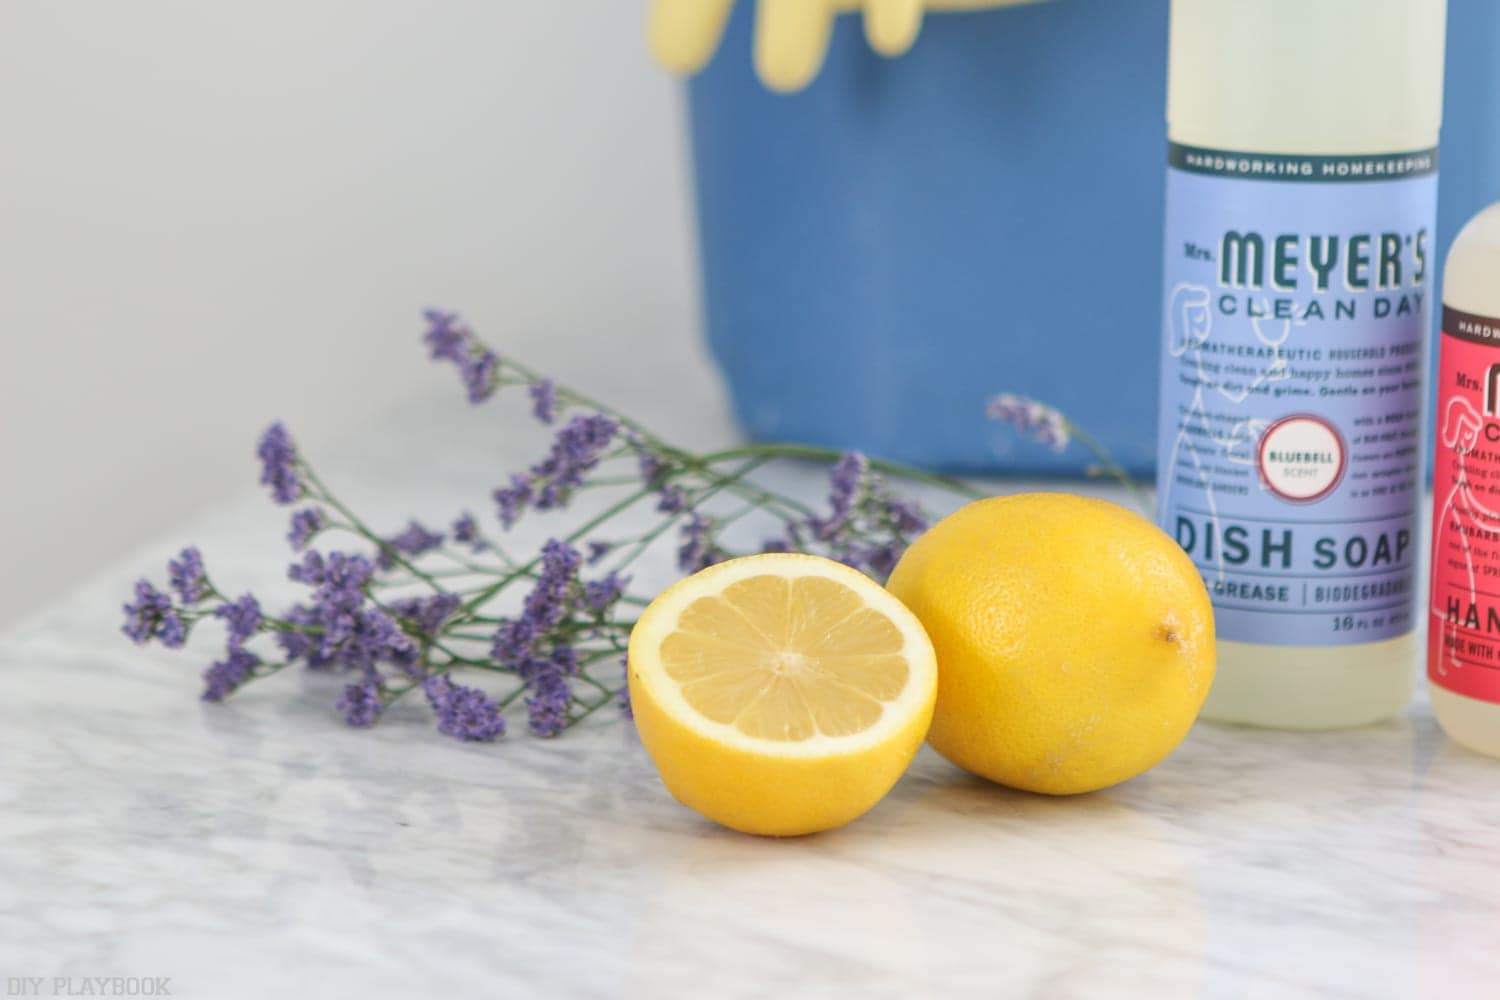 Cleaning essentials; lemon and lavender for that fresh, clean scent and dish soap and hand soap.